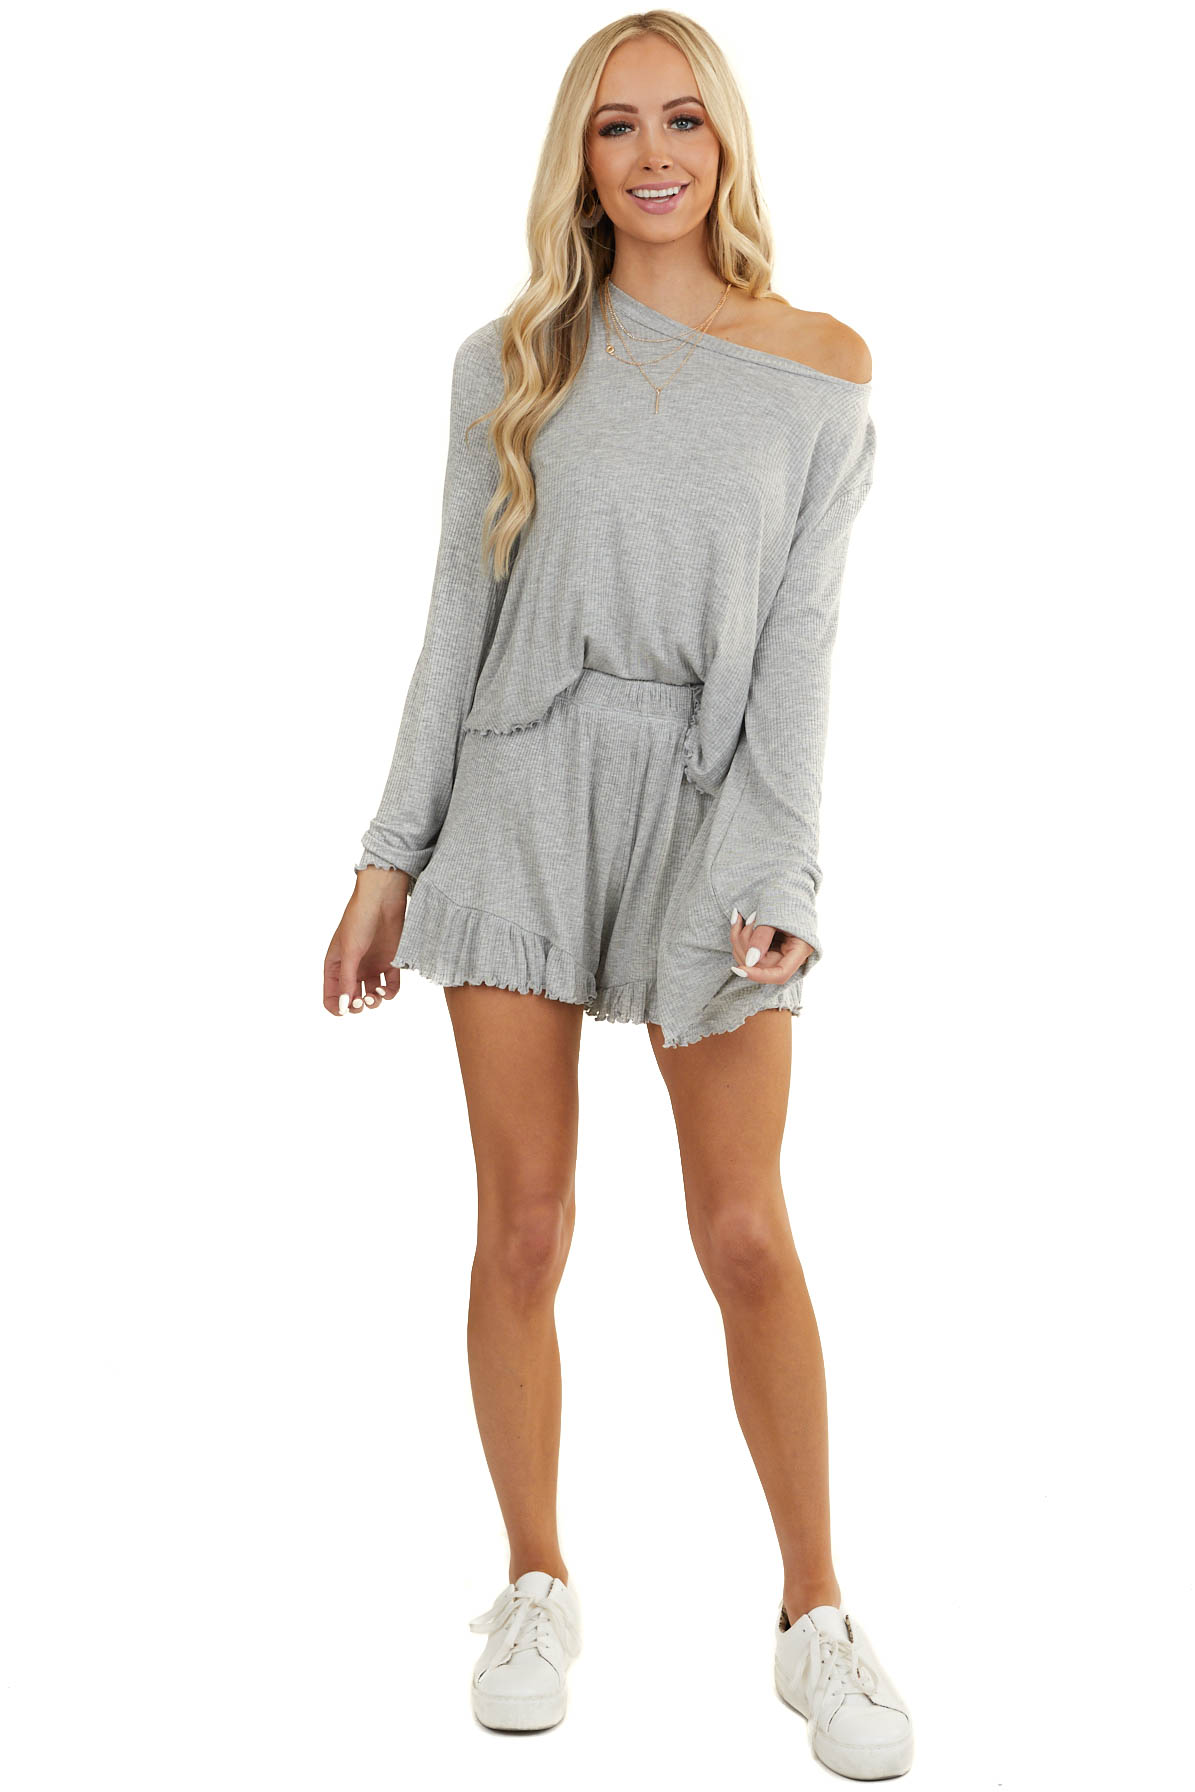 Heather Grey Soft Long Sleeve Top with Shorts Lounge Set